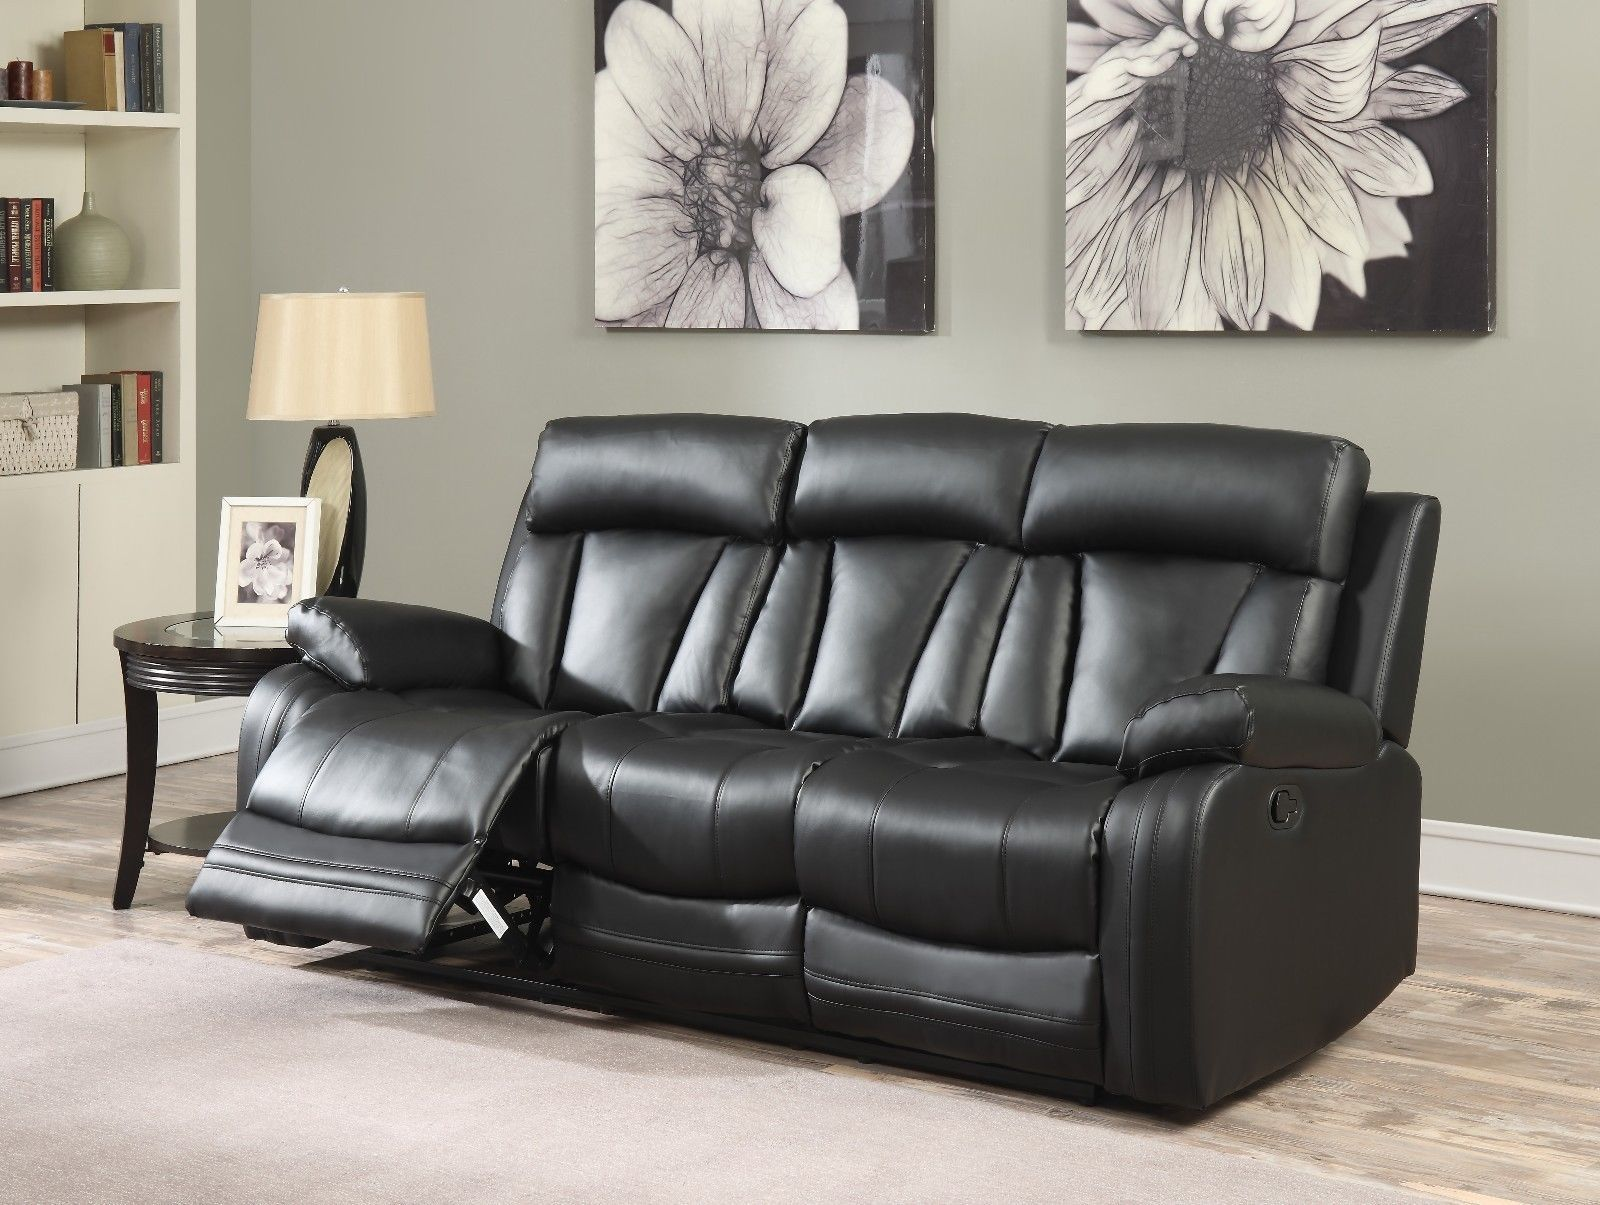 Meridian 645 Bonded Leather Living Room Sofa Set 2pc. Black Contemporary Style